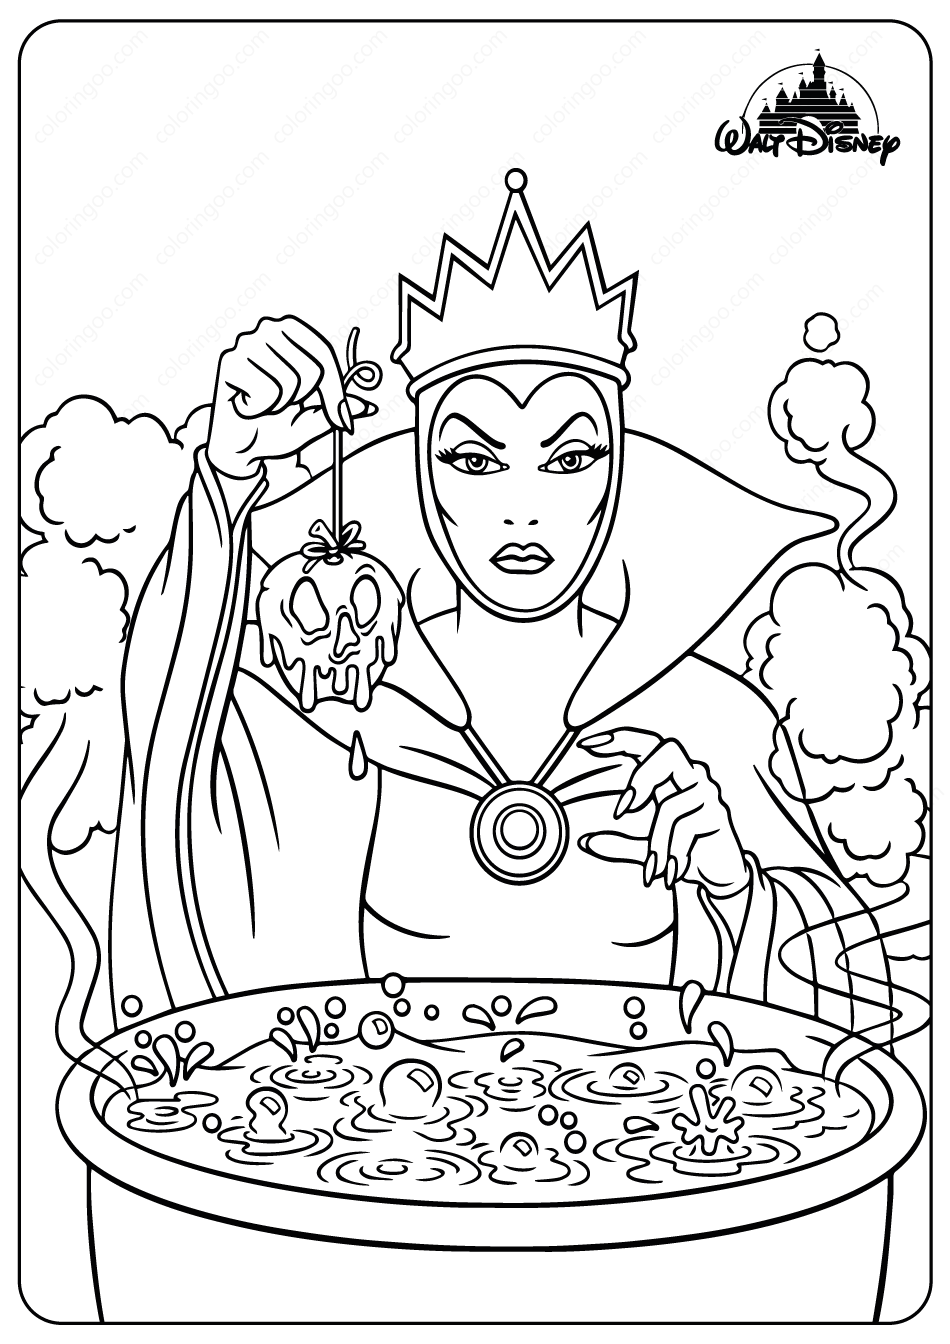 The Evil Queen Coloring Pages Disney Coloring Pages Disney Coloring Sheets Cartoon Coloring Pages